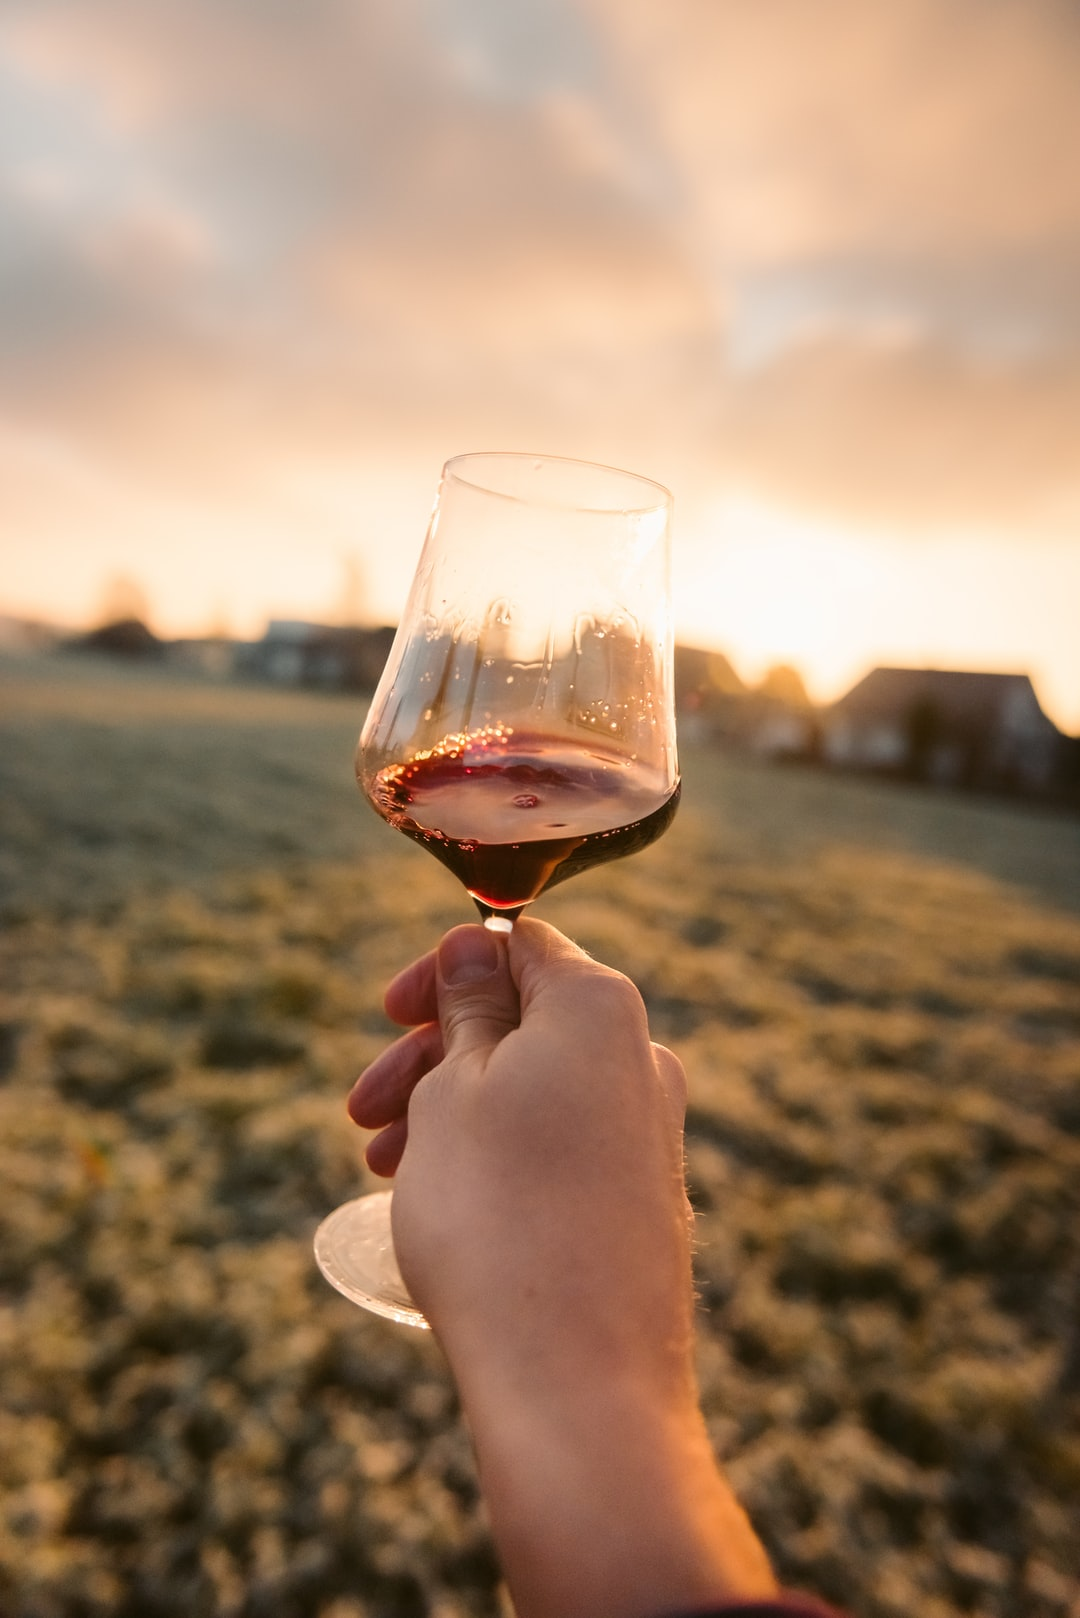 man holding a glass of red wine into the setting sun in beautiful light captured in point-of-view perspective